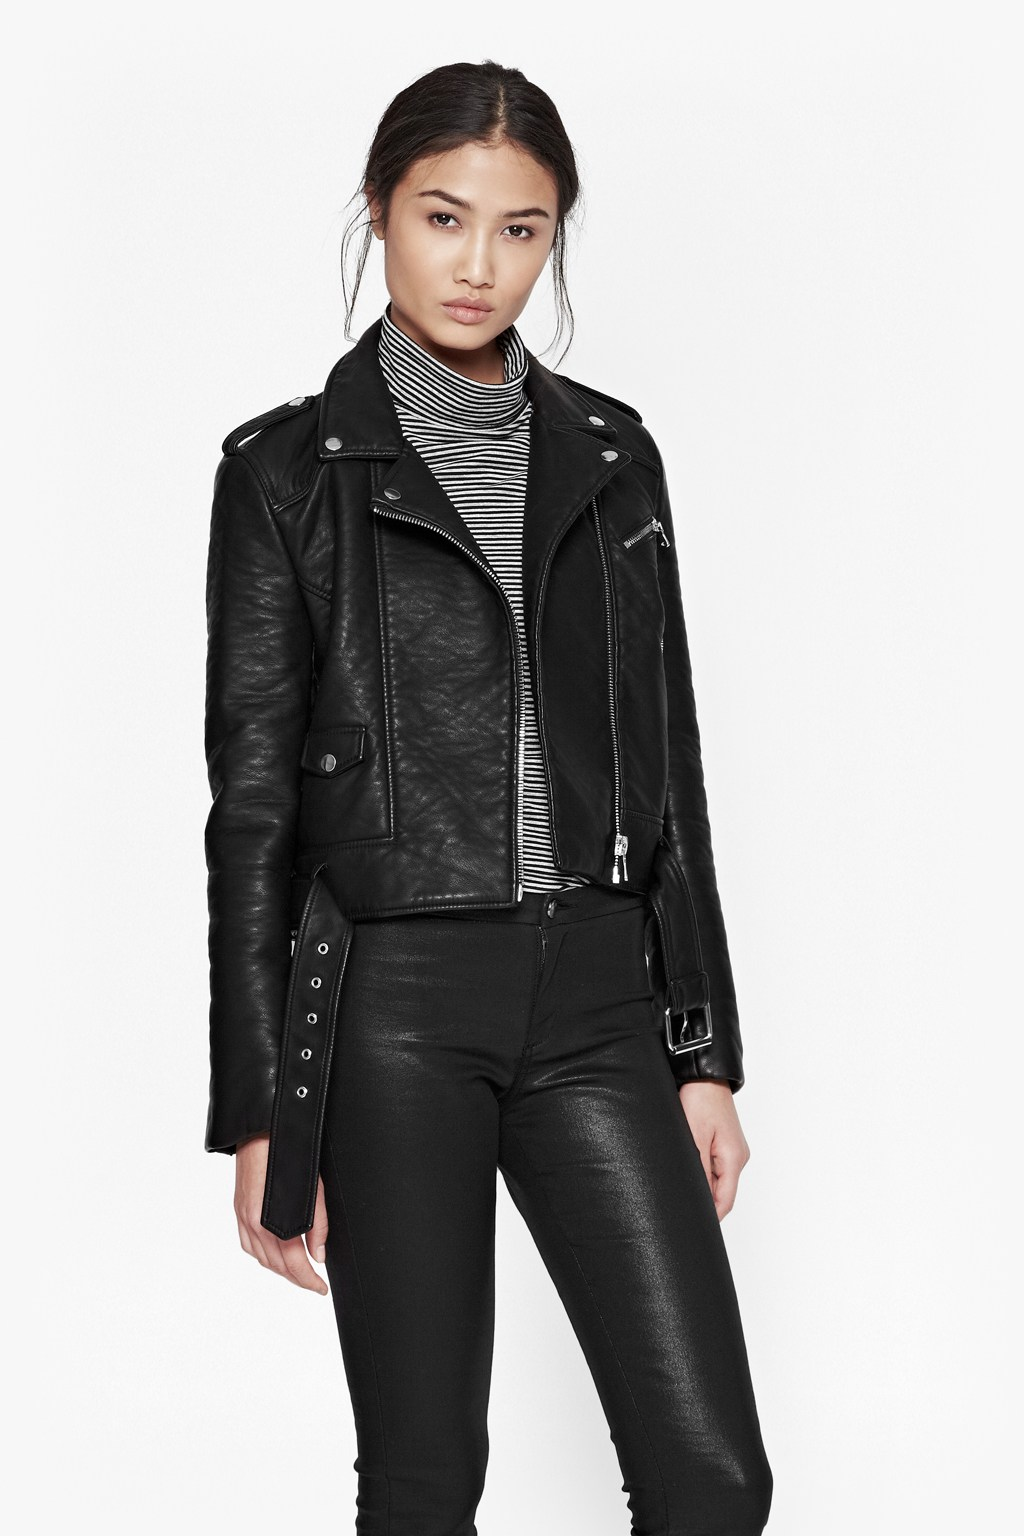 Shop Wilsons Leather for women's faux-leather jackets & coats and more. Get high quality women's faux-leather jackets & coats at exceptional values.